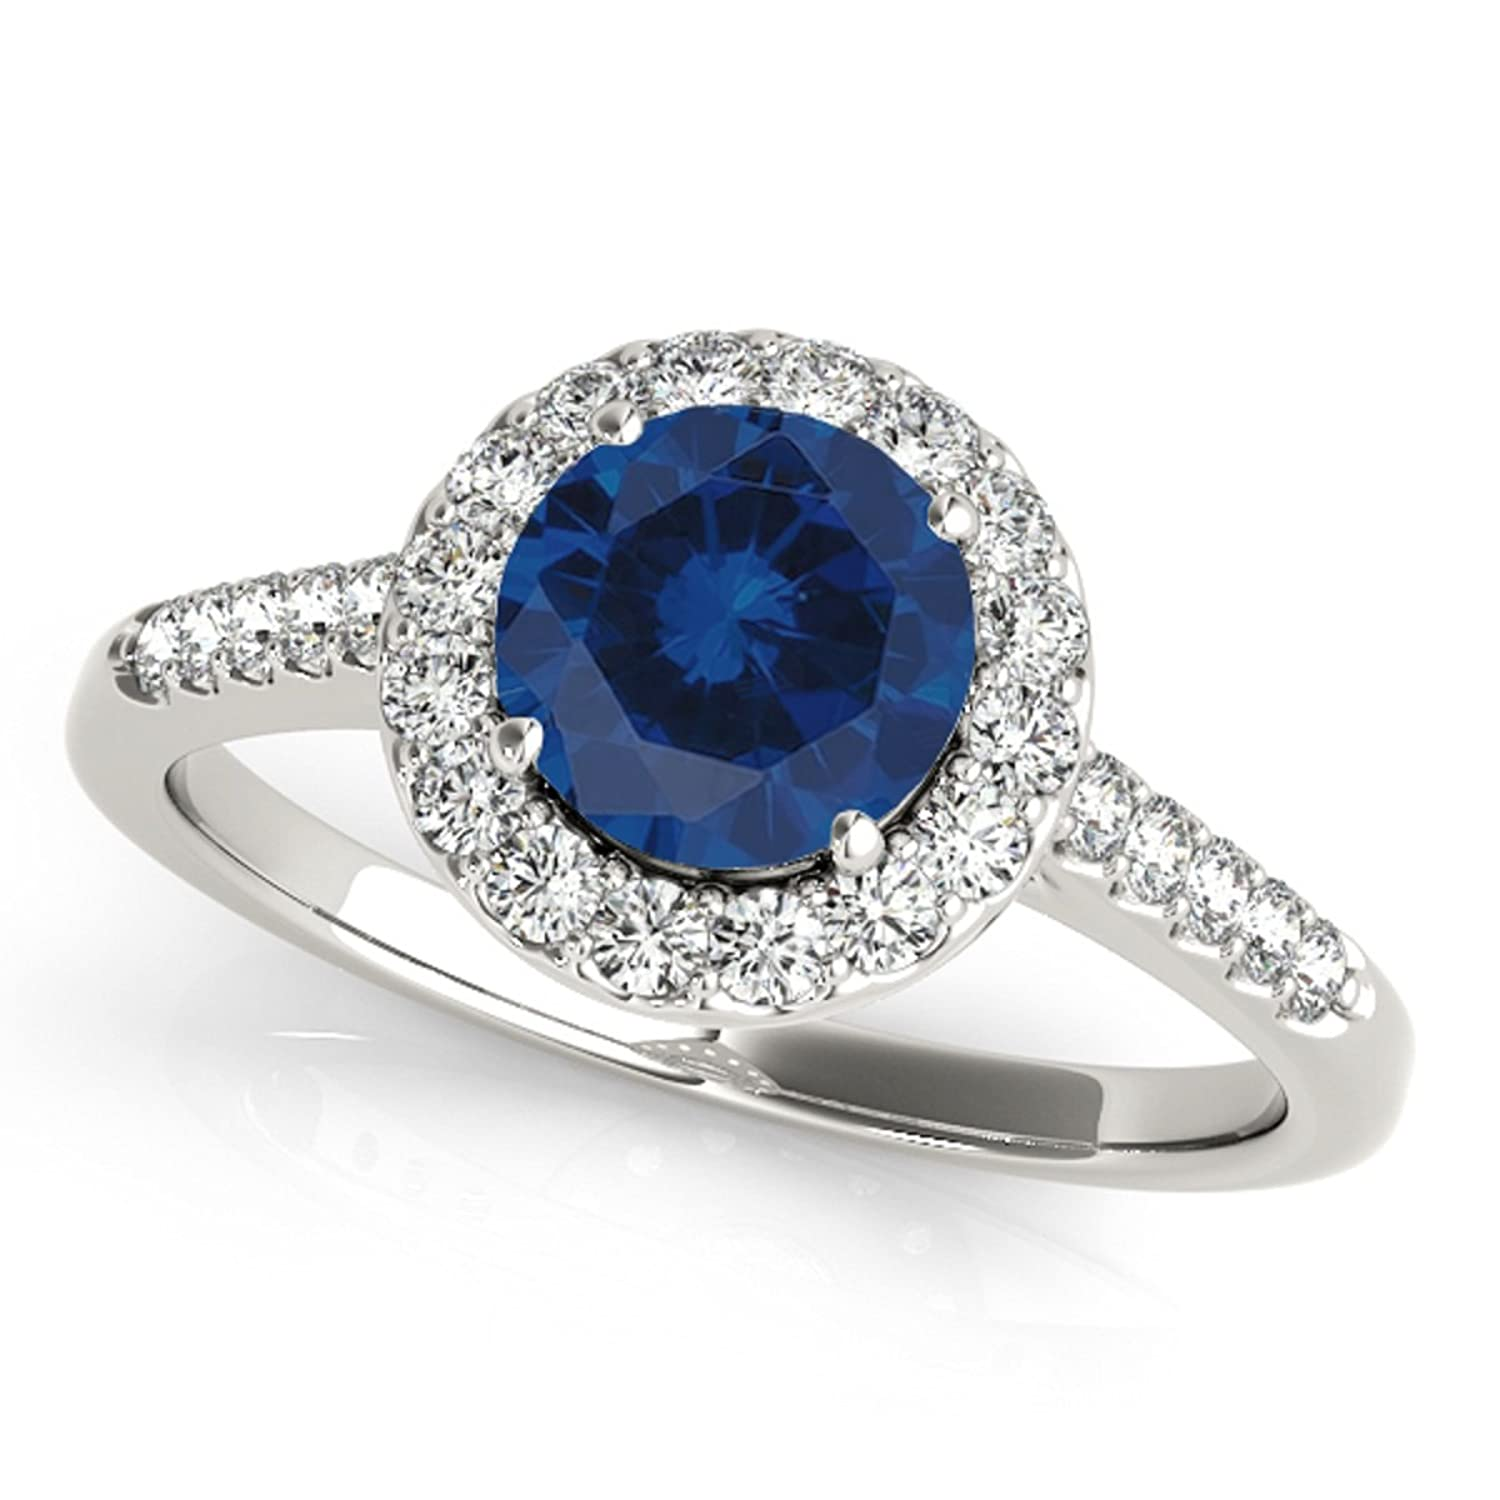 1.40 Ct. Halo Sapphire And Diamond Bridal Set In 14k White Gold